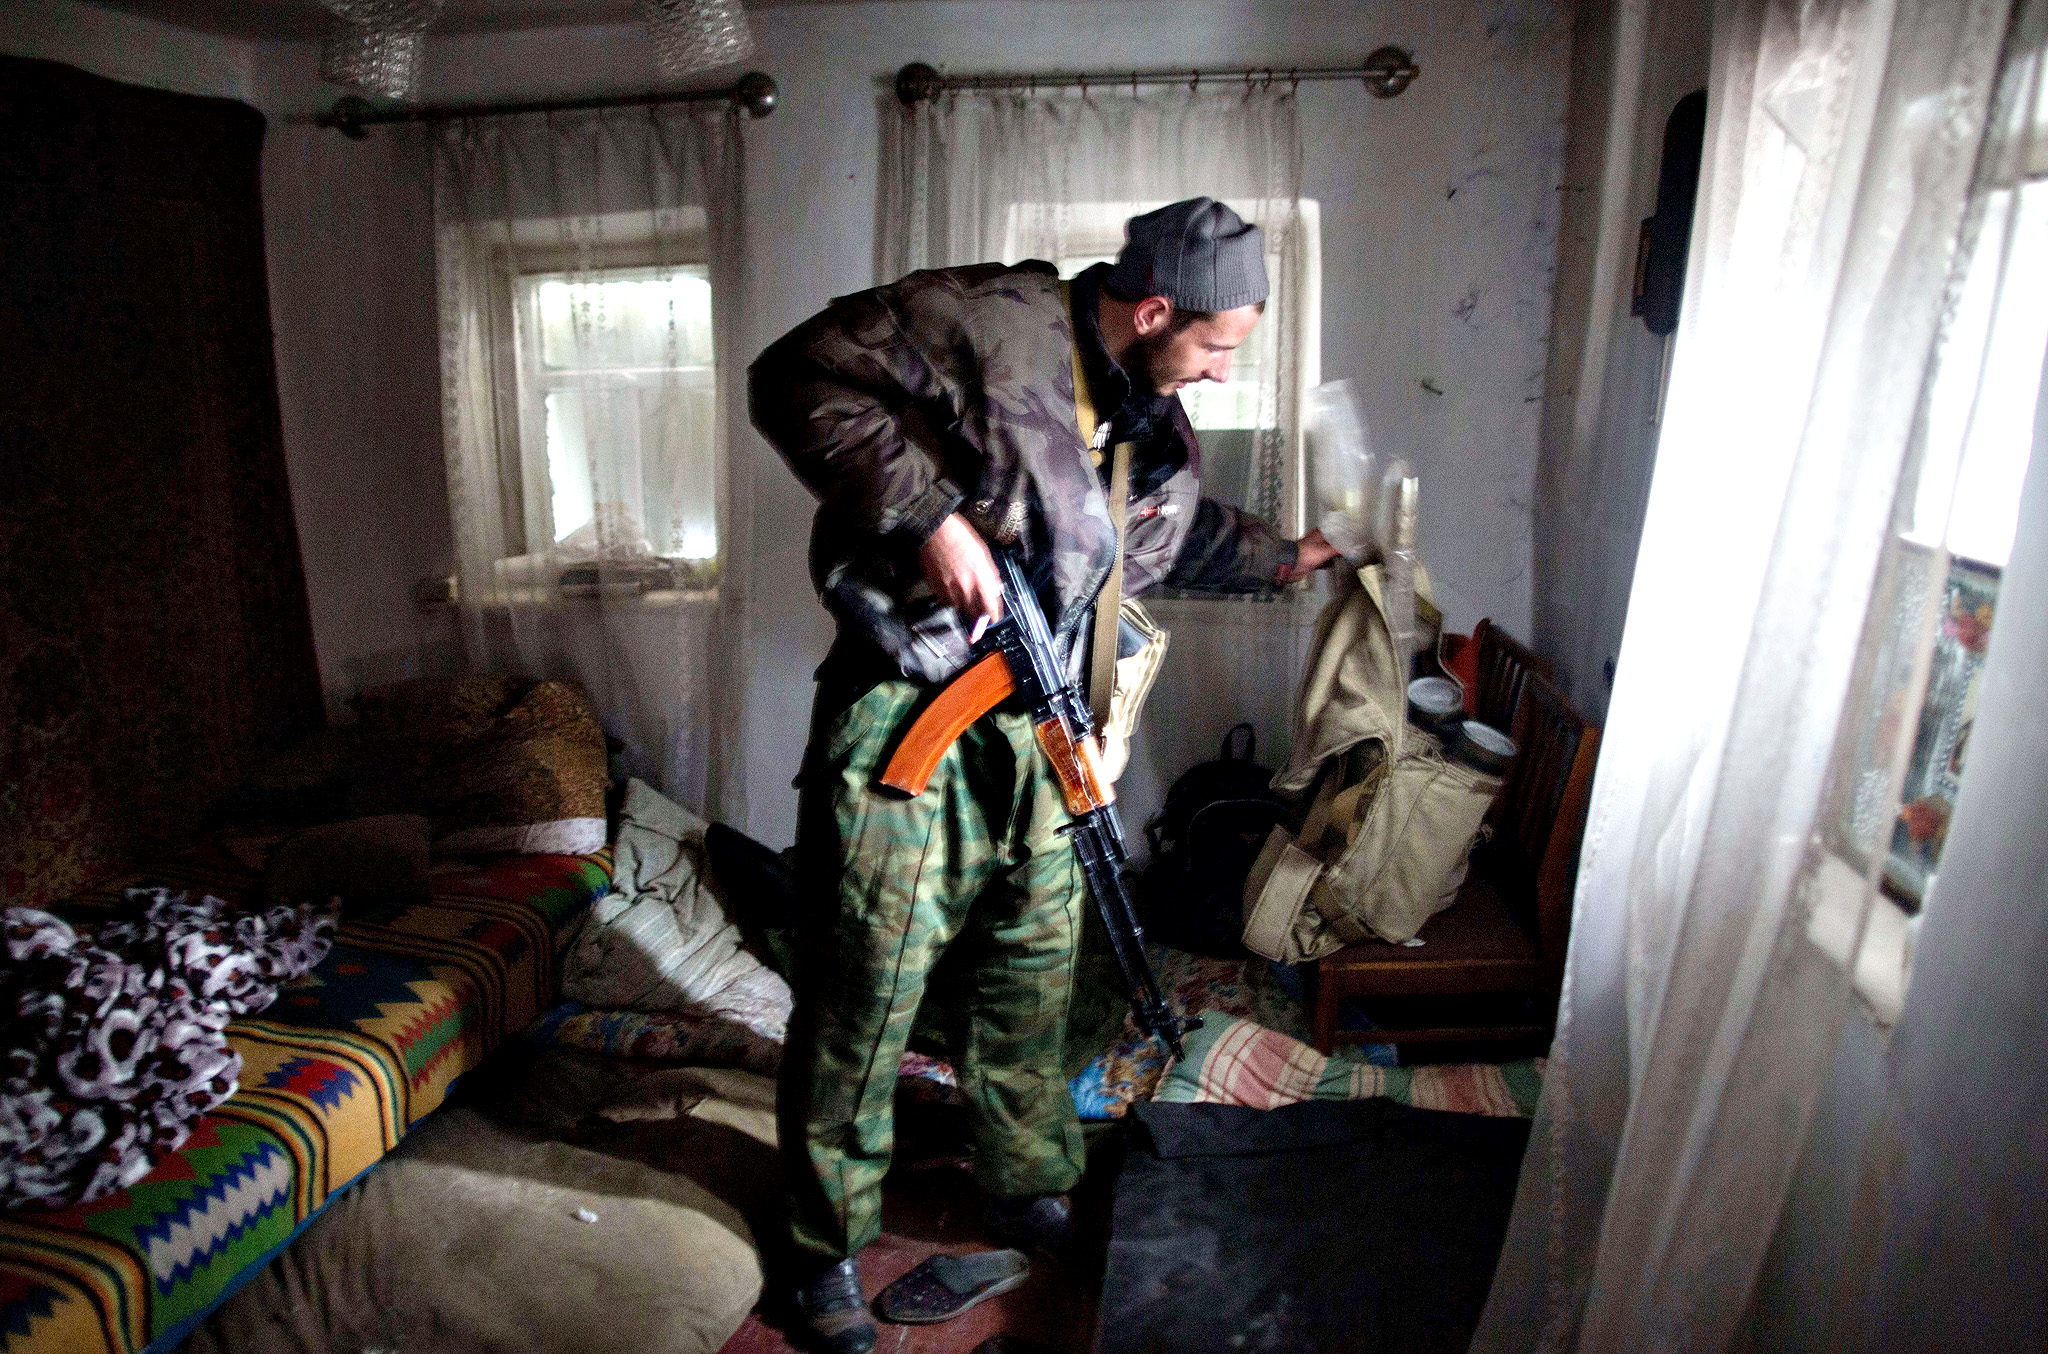 A Pro-Russian gunman prepares in his room in the Oktyaber neighborhood, north west of Donetsk, near the destroyed airport, on November 13, 2014, following last days shelling in eastern Ukraine. After NATO accused Russia of deploying tanks, troops and military hardware to the region, Ukraine said on November 13, four of its soldiers had been killed in the past 24 hours and 18 wounded.